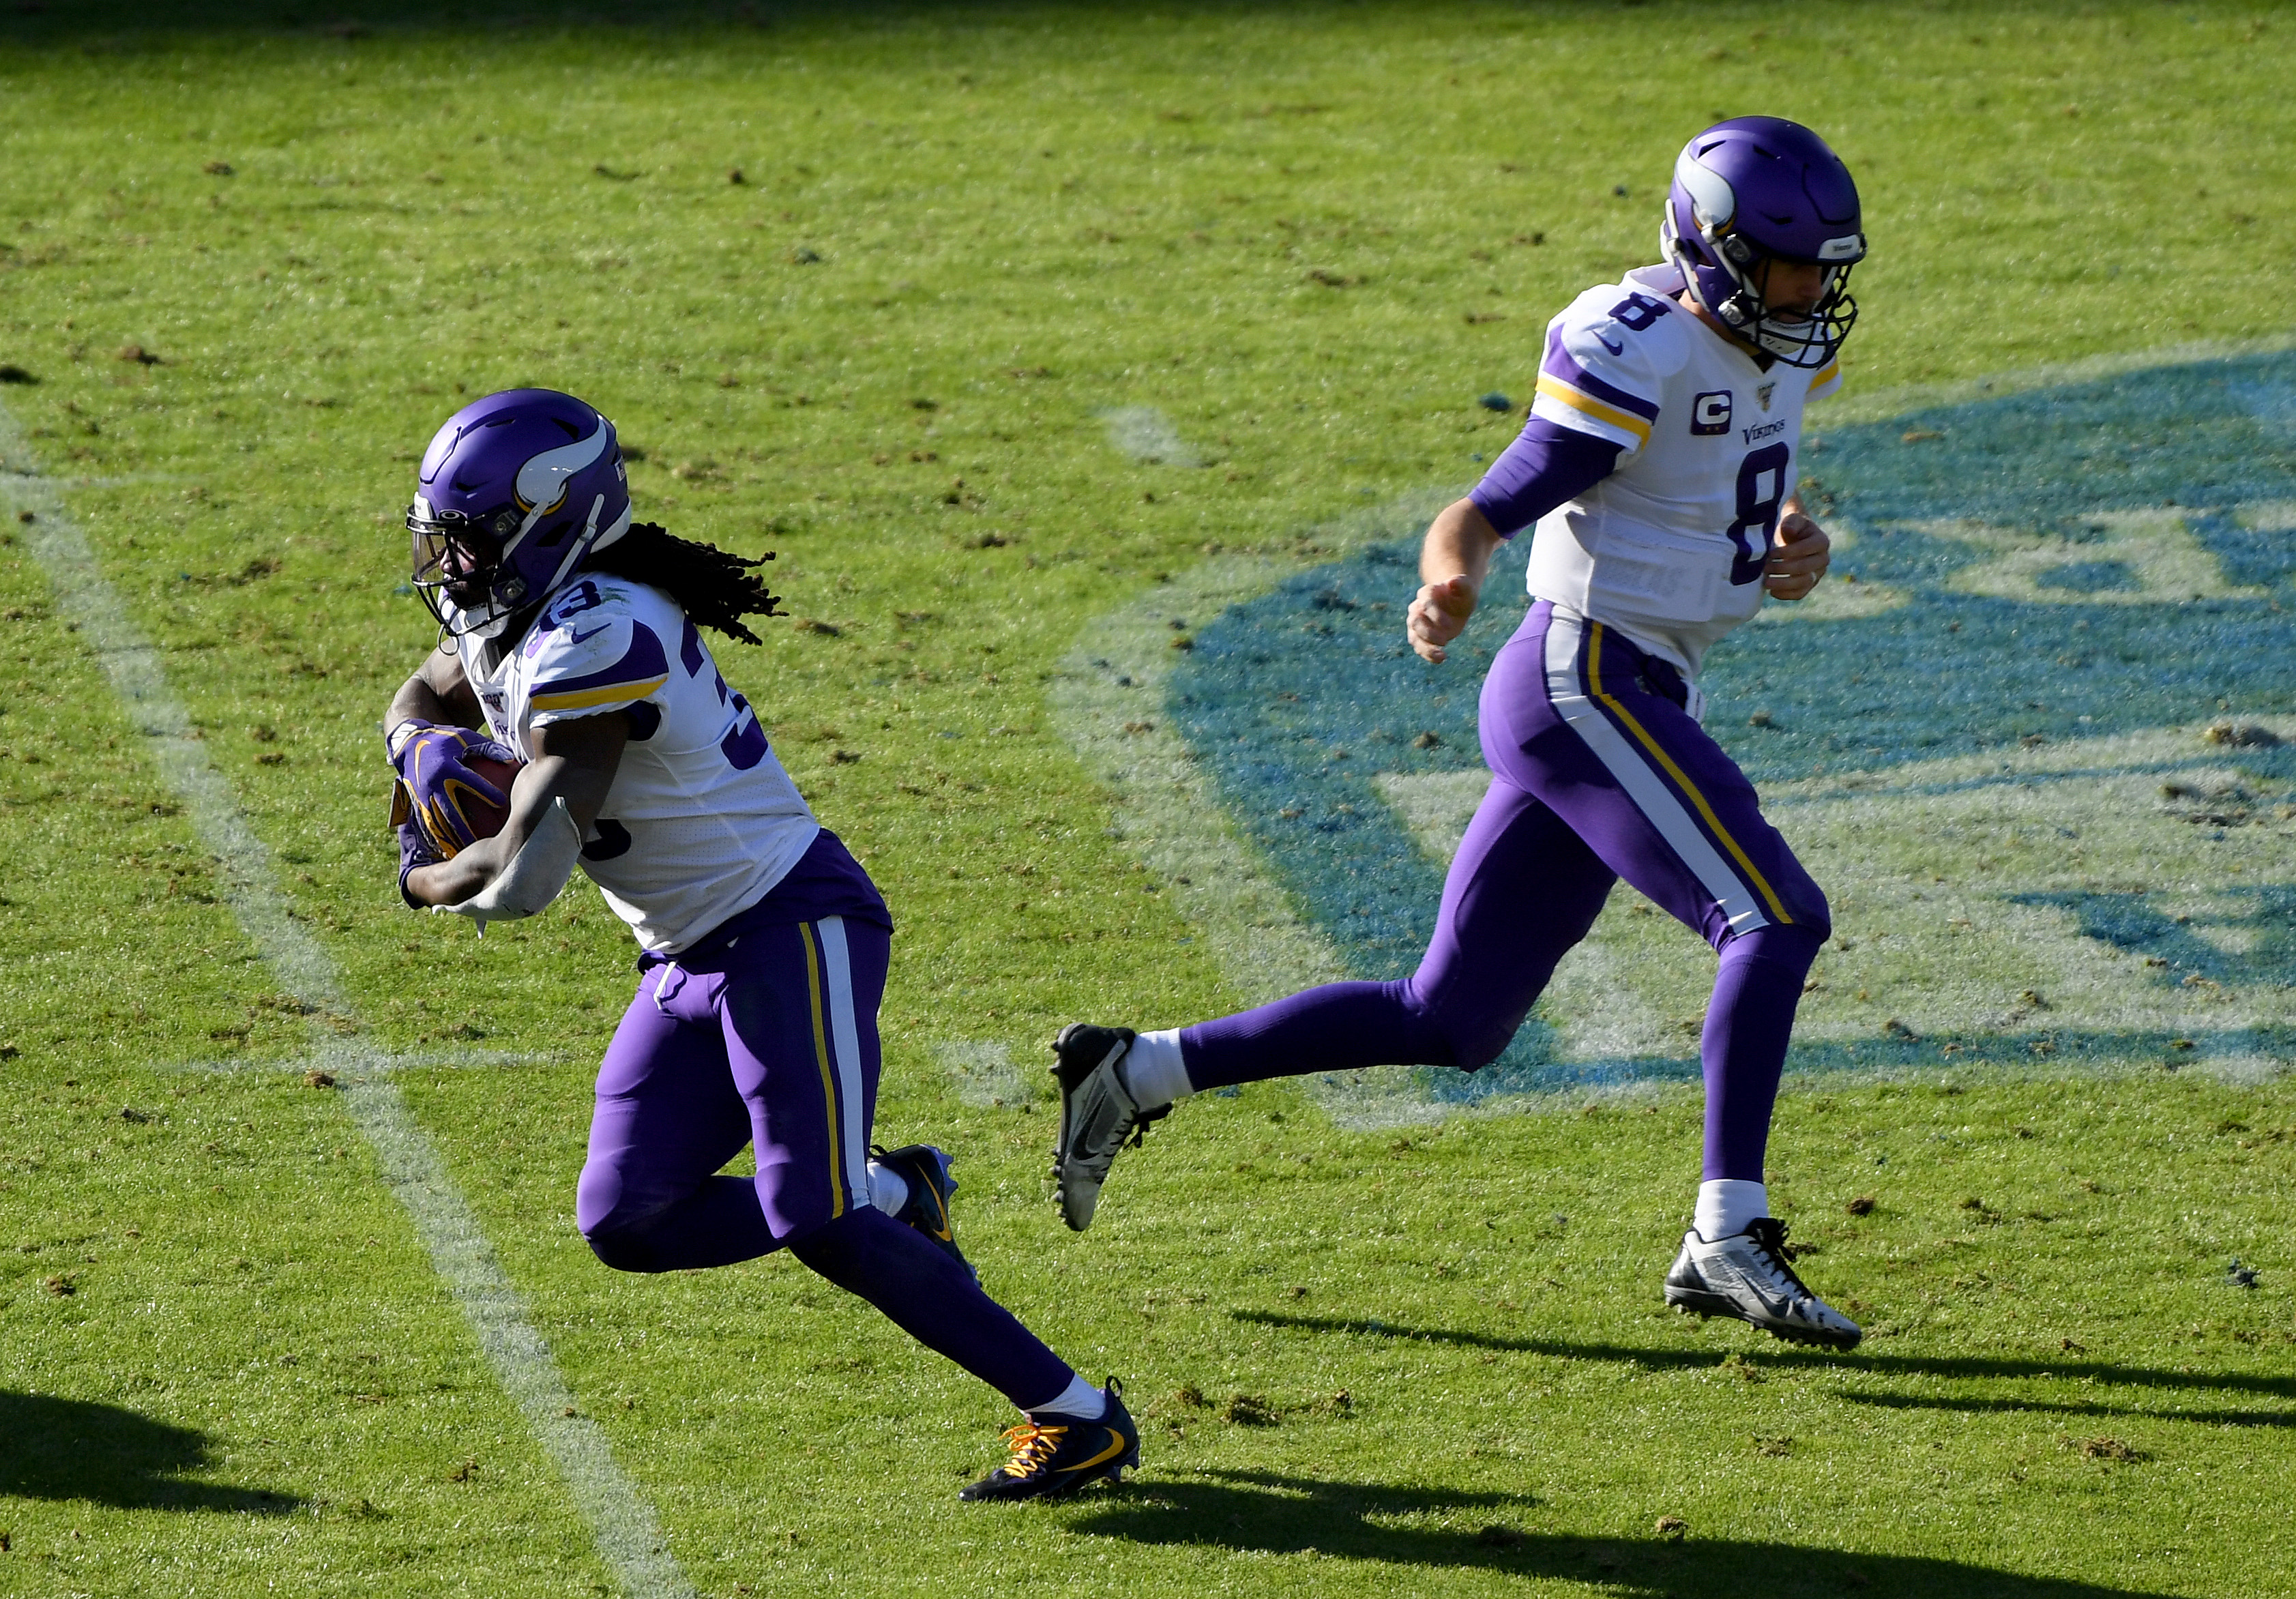 Dalvin Cook of the Minnesota Vikings takes a handoff from Kirk Cousins during the second quarter against the Los Angeles Chargers at Dignity Health Sports Park on December 15, 2019 in Carson, California.